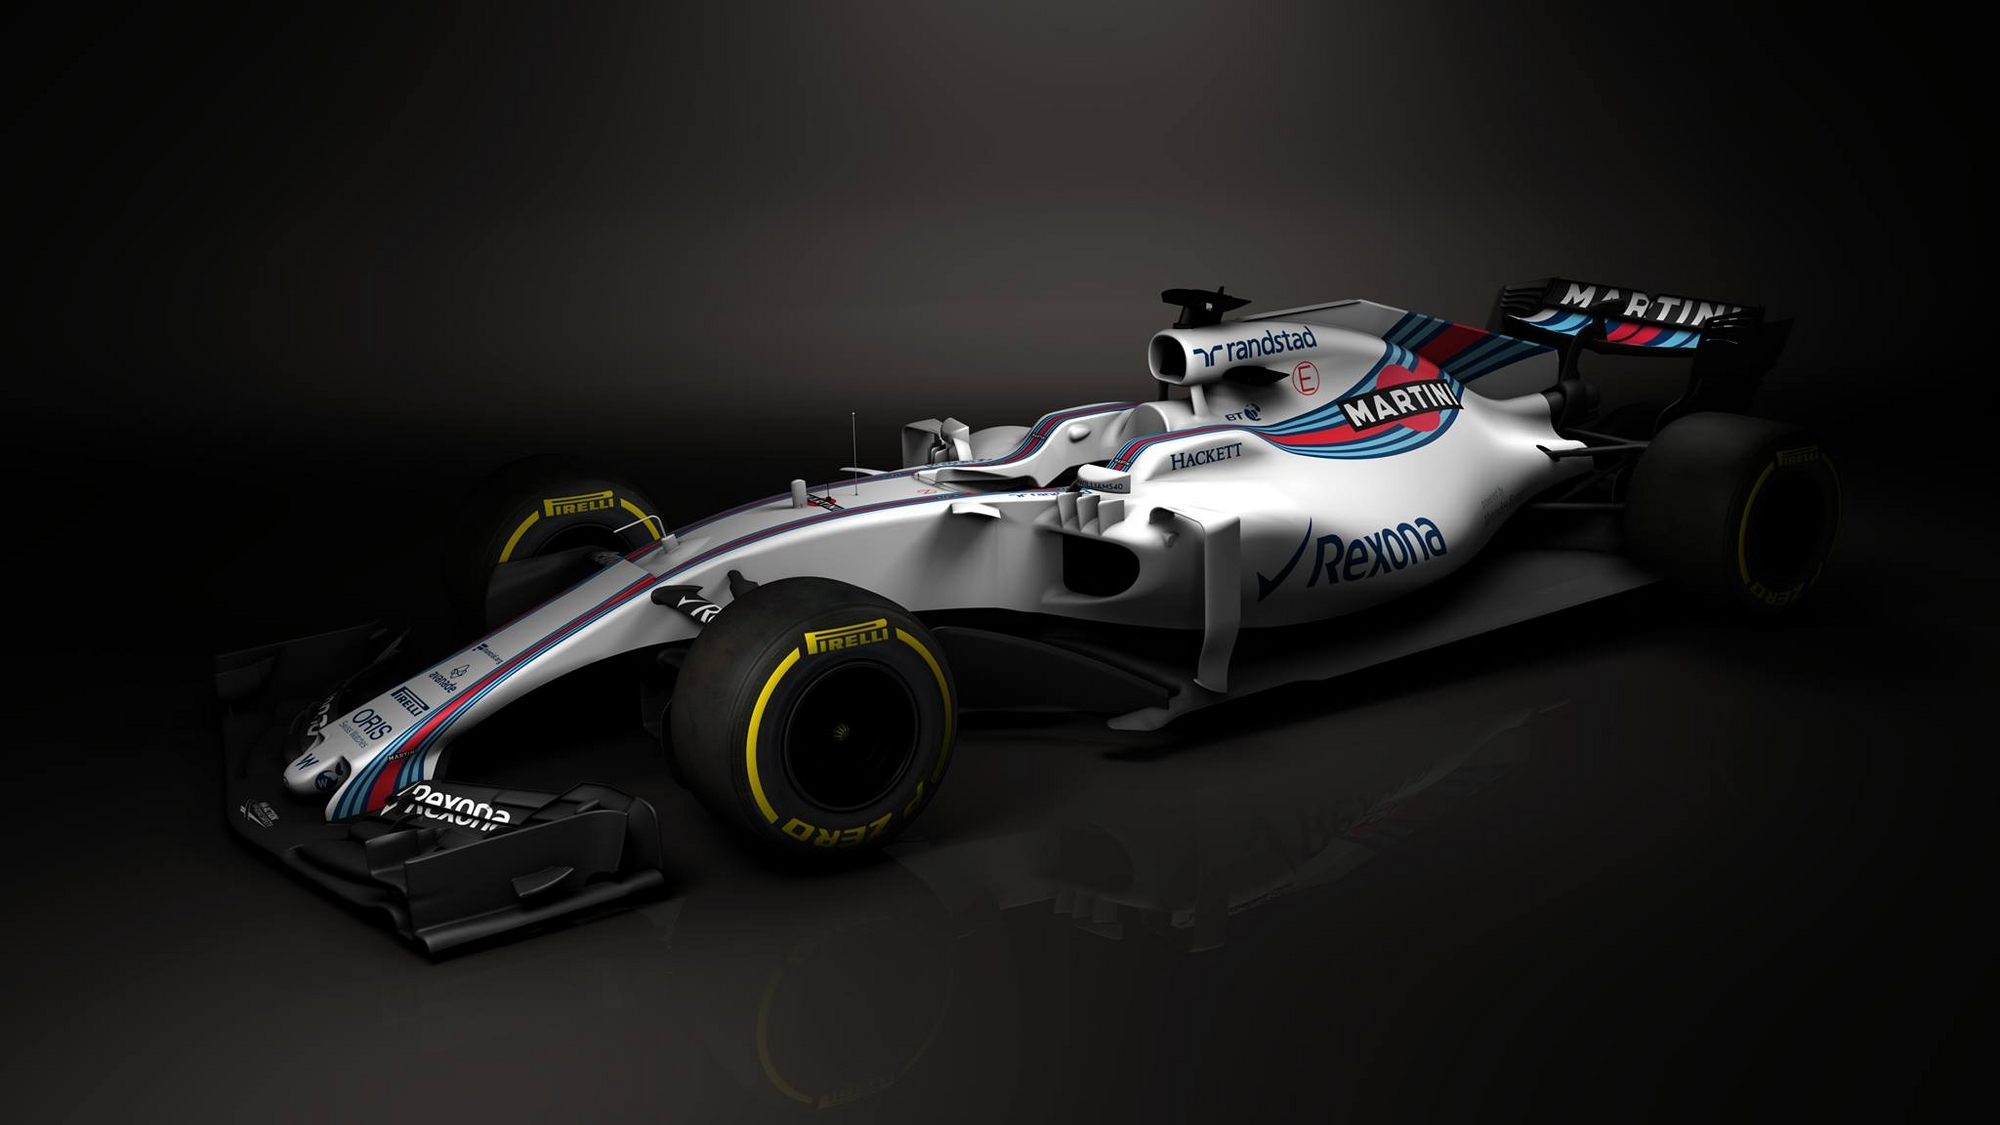 The final design of the Williams FW40 will be presented in Barcelona two days beferoe the pre season tests